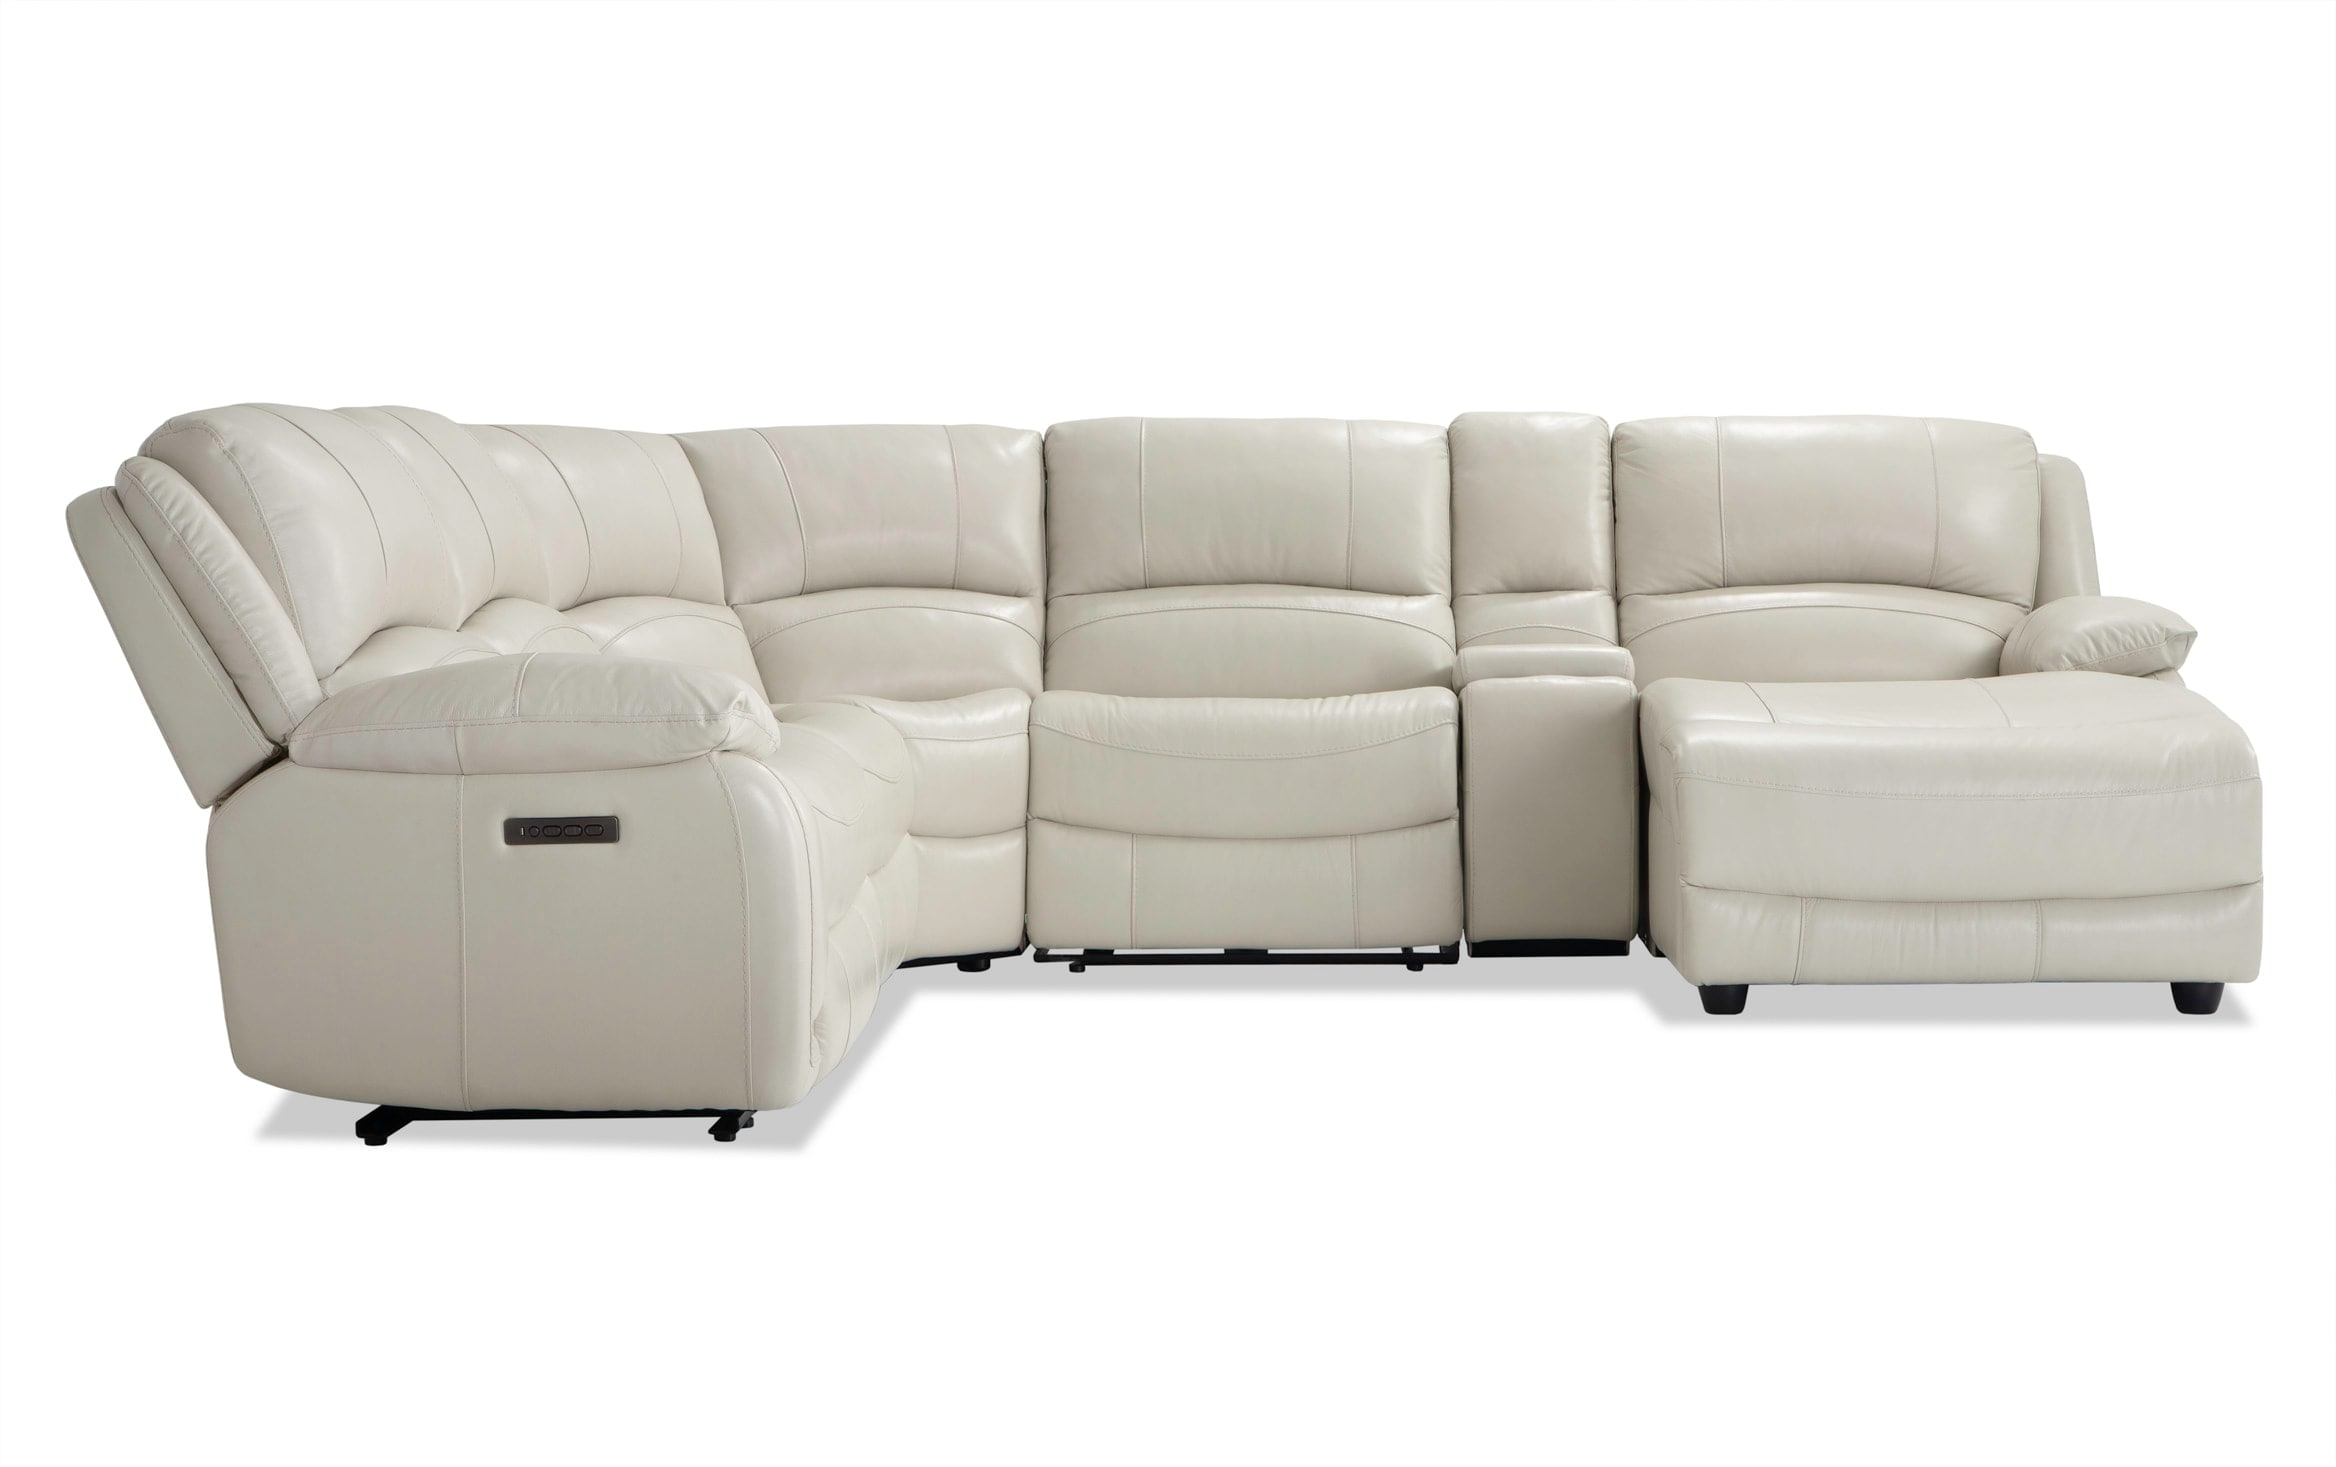 Titan Ice Leather 6 Piece Power Reclining Left Arm Facing Sectional Bobs Com